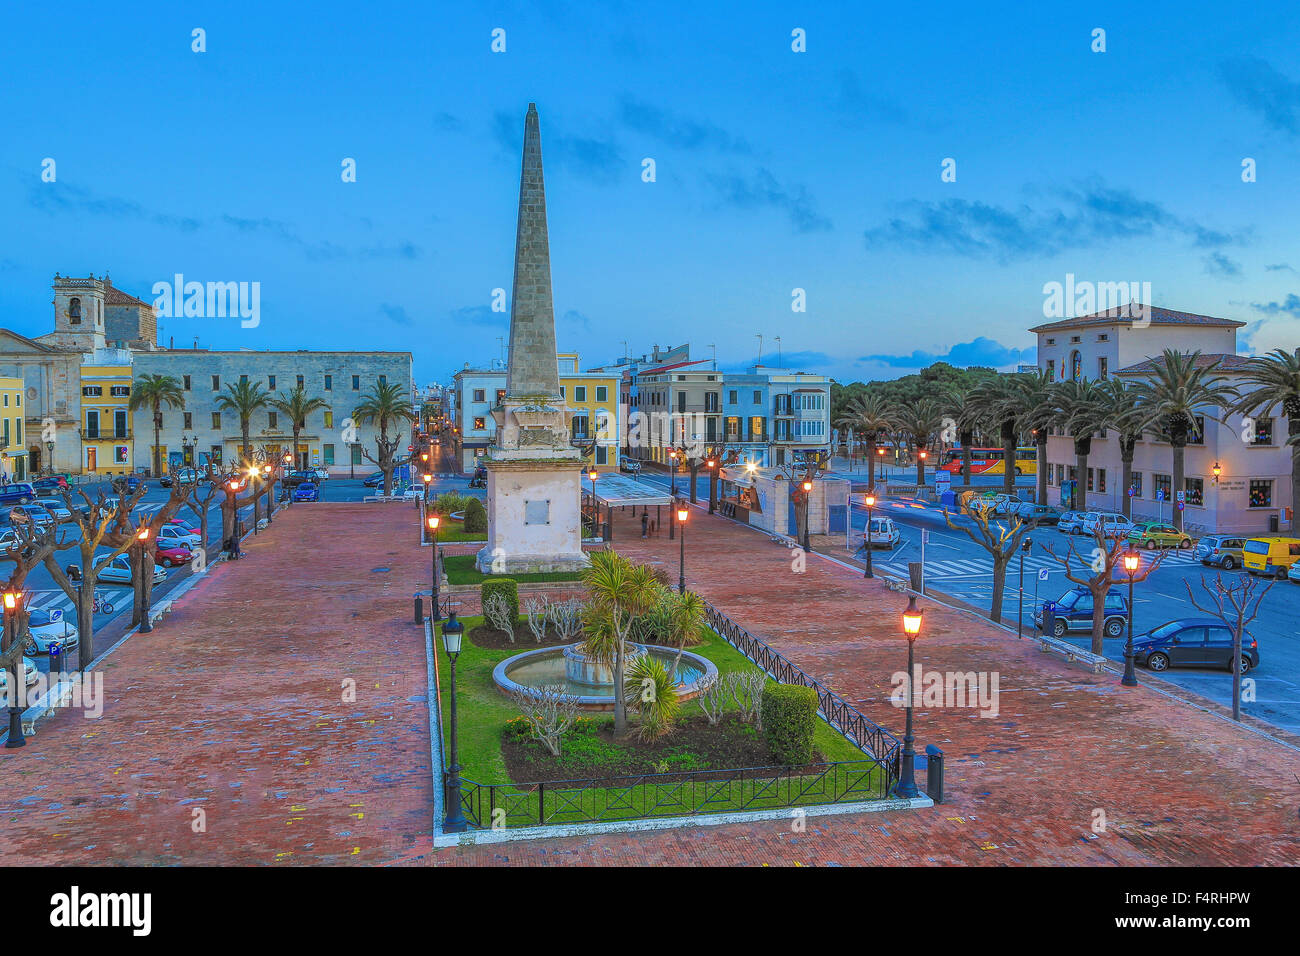 Balearic Islands, Born, Ciutadella, town, Menorca, Island, Spain, Europe, Spring, architecture, lights, no people, - Stock Image